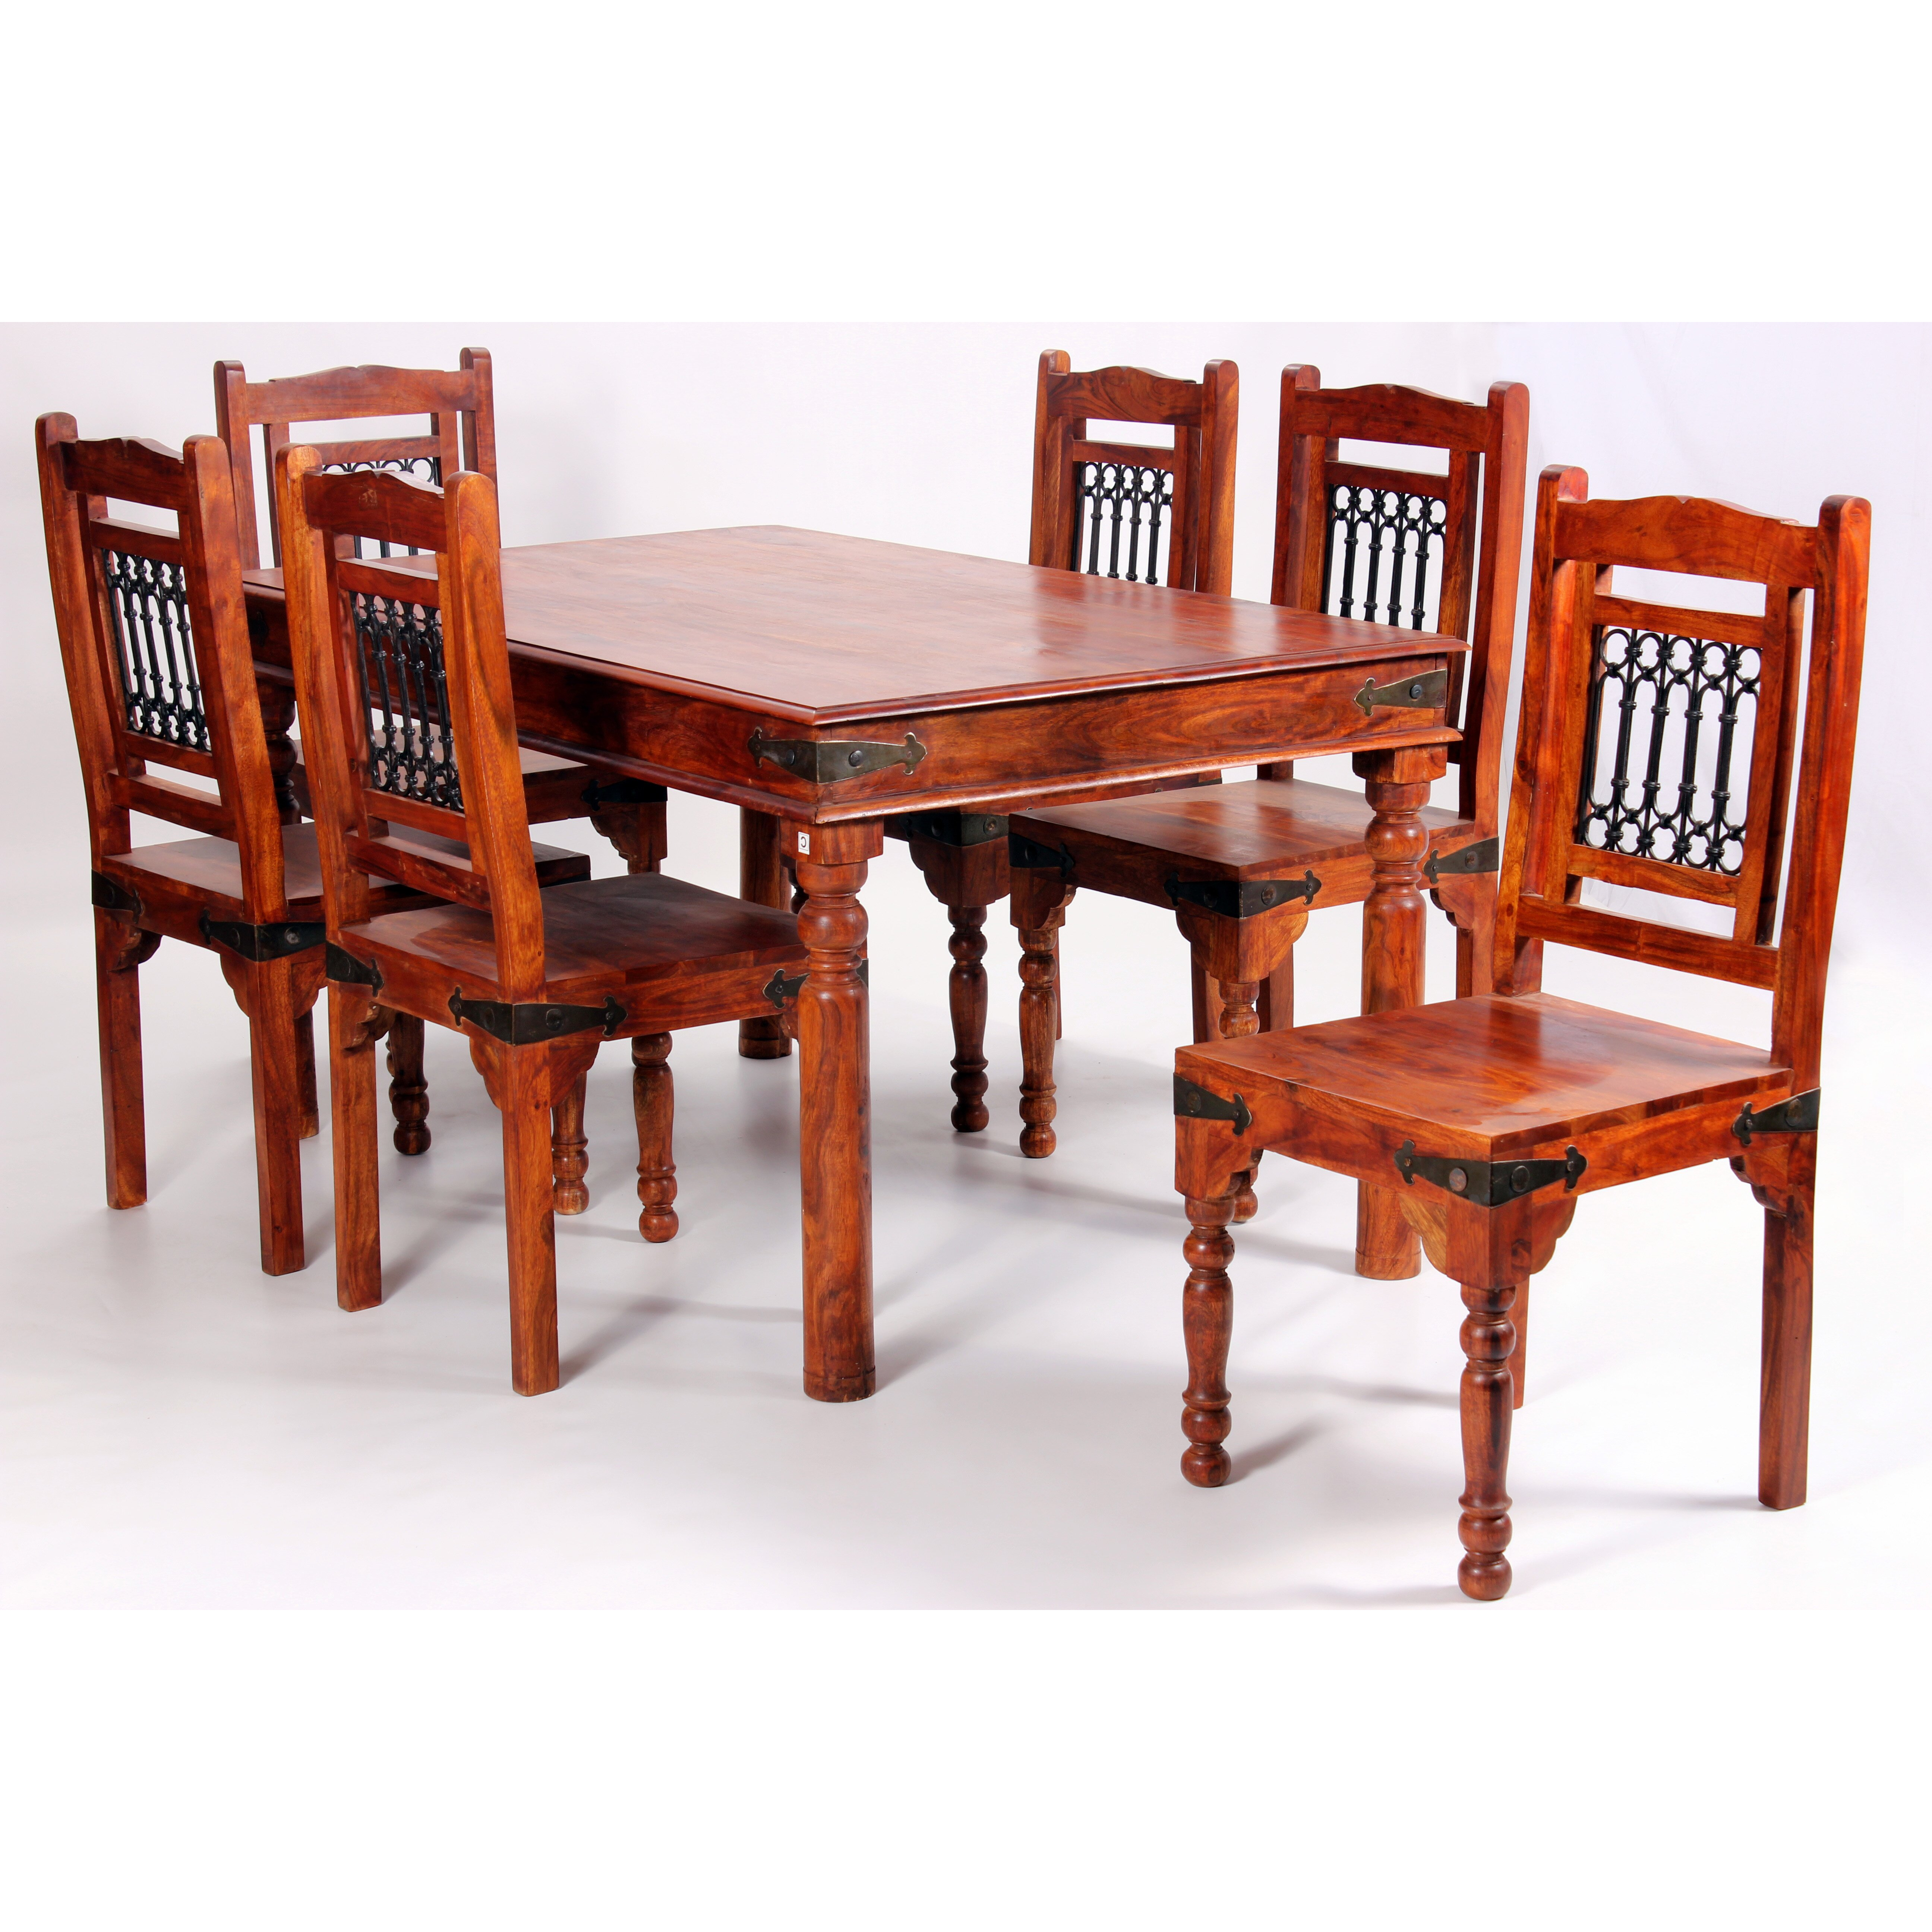 Heartlands jaipur dining table and chairs reviews